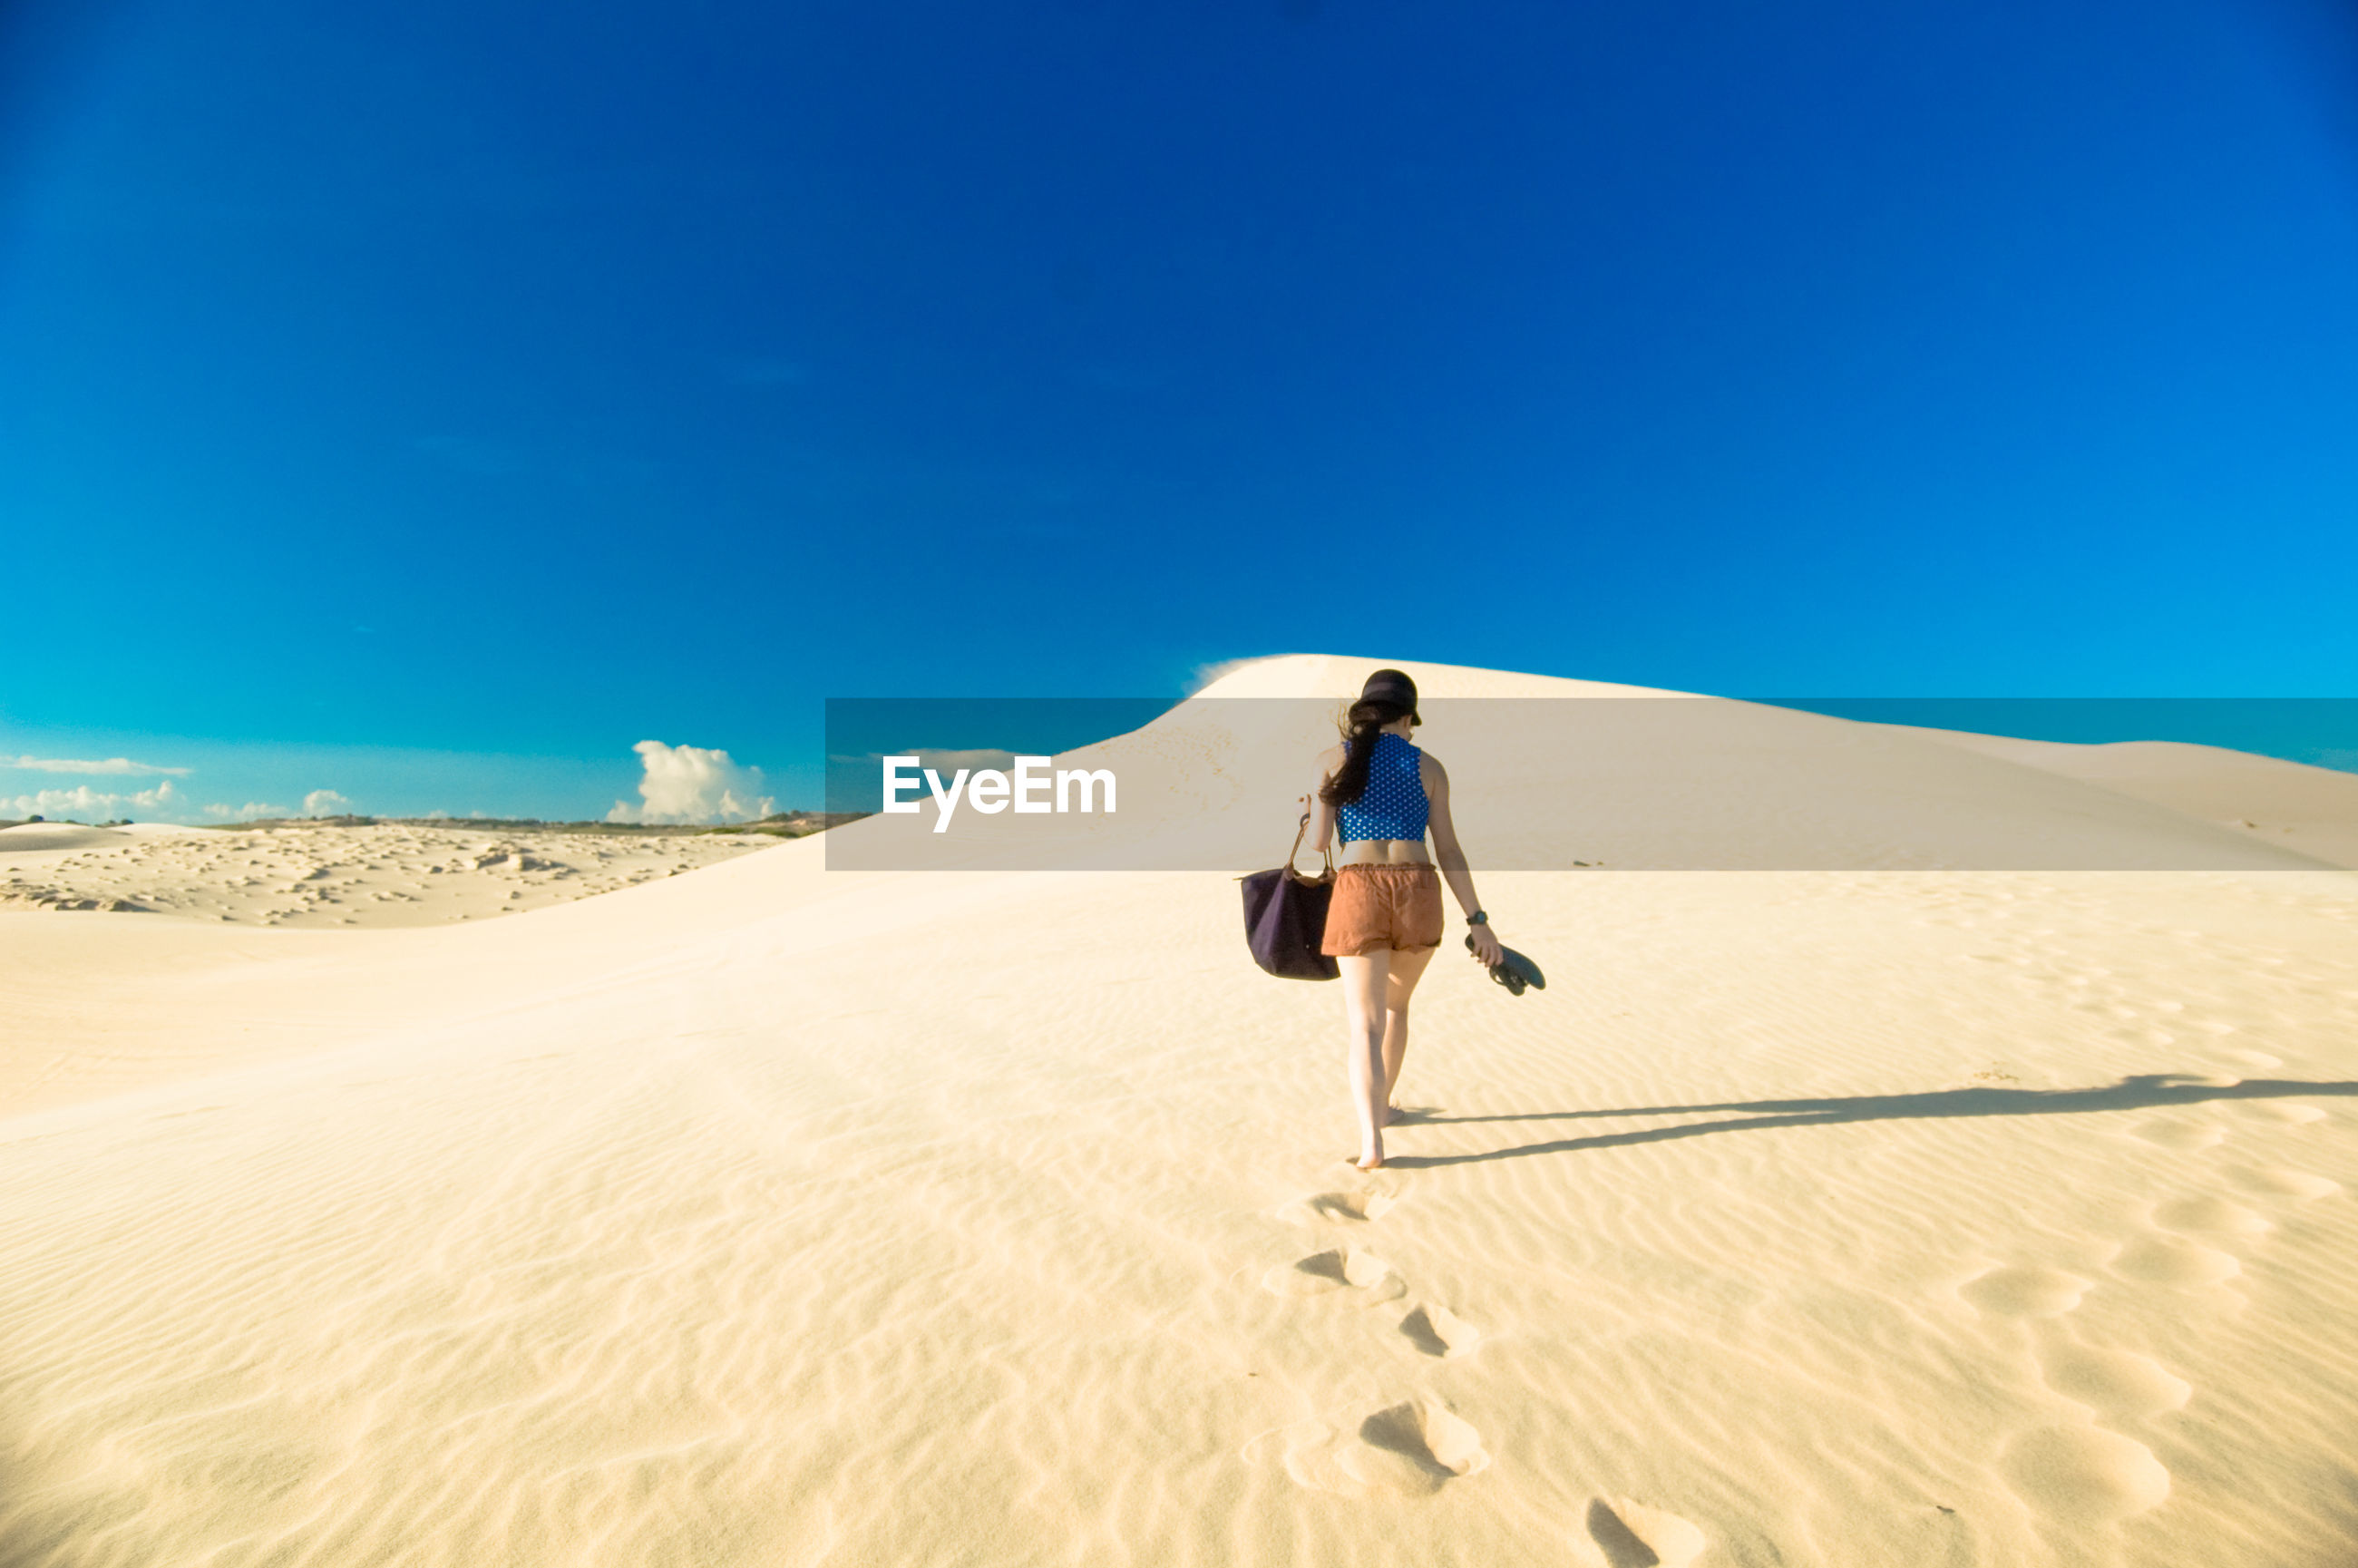 Young woman walking in desert against clear blue sky